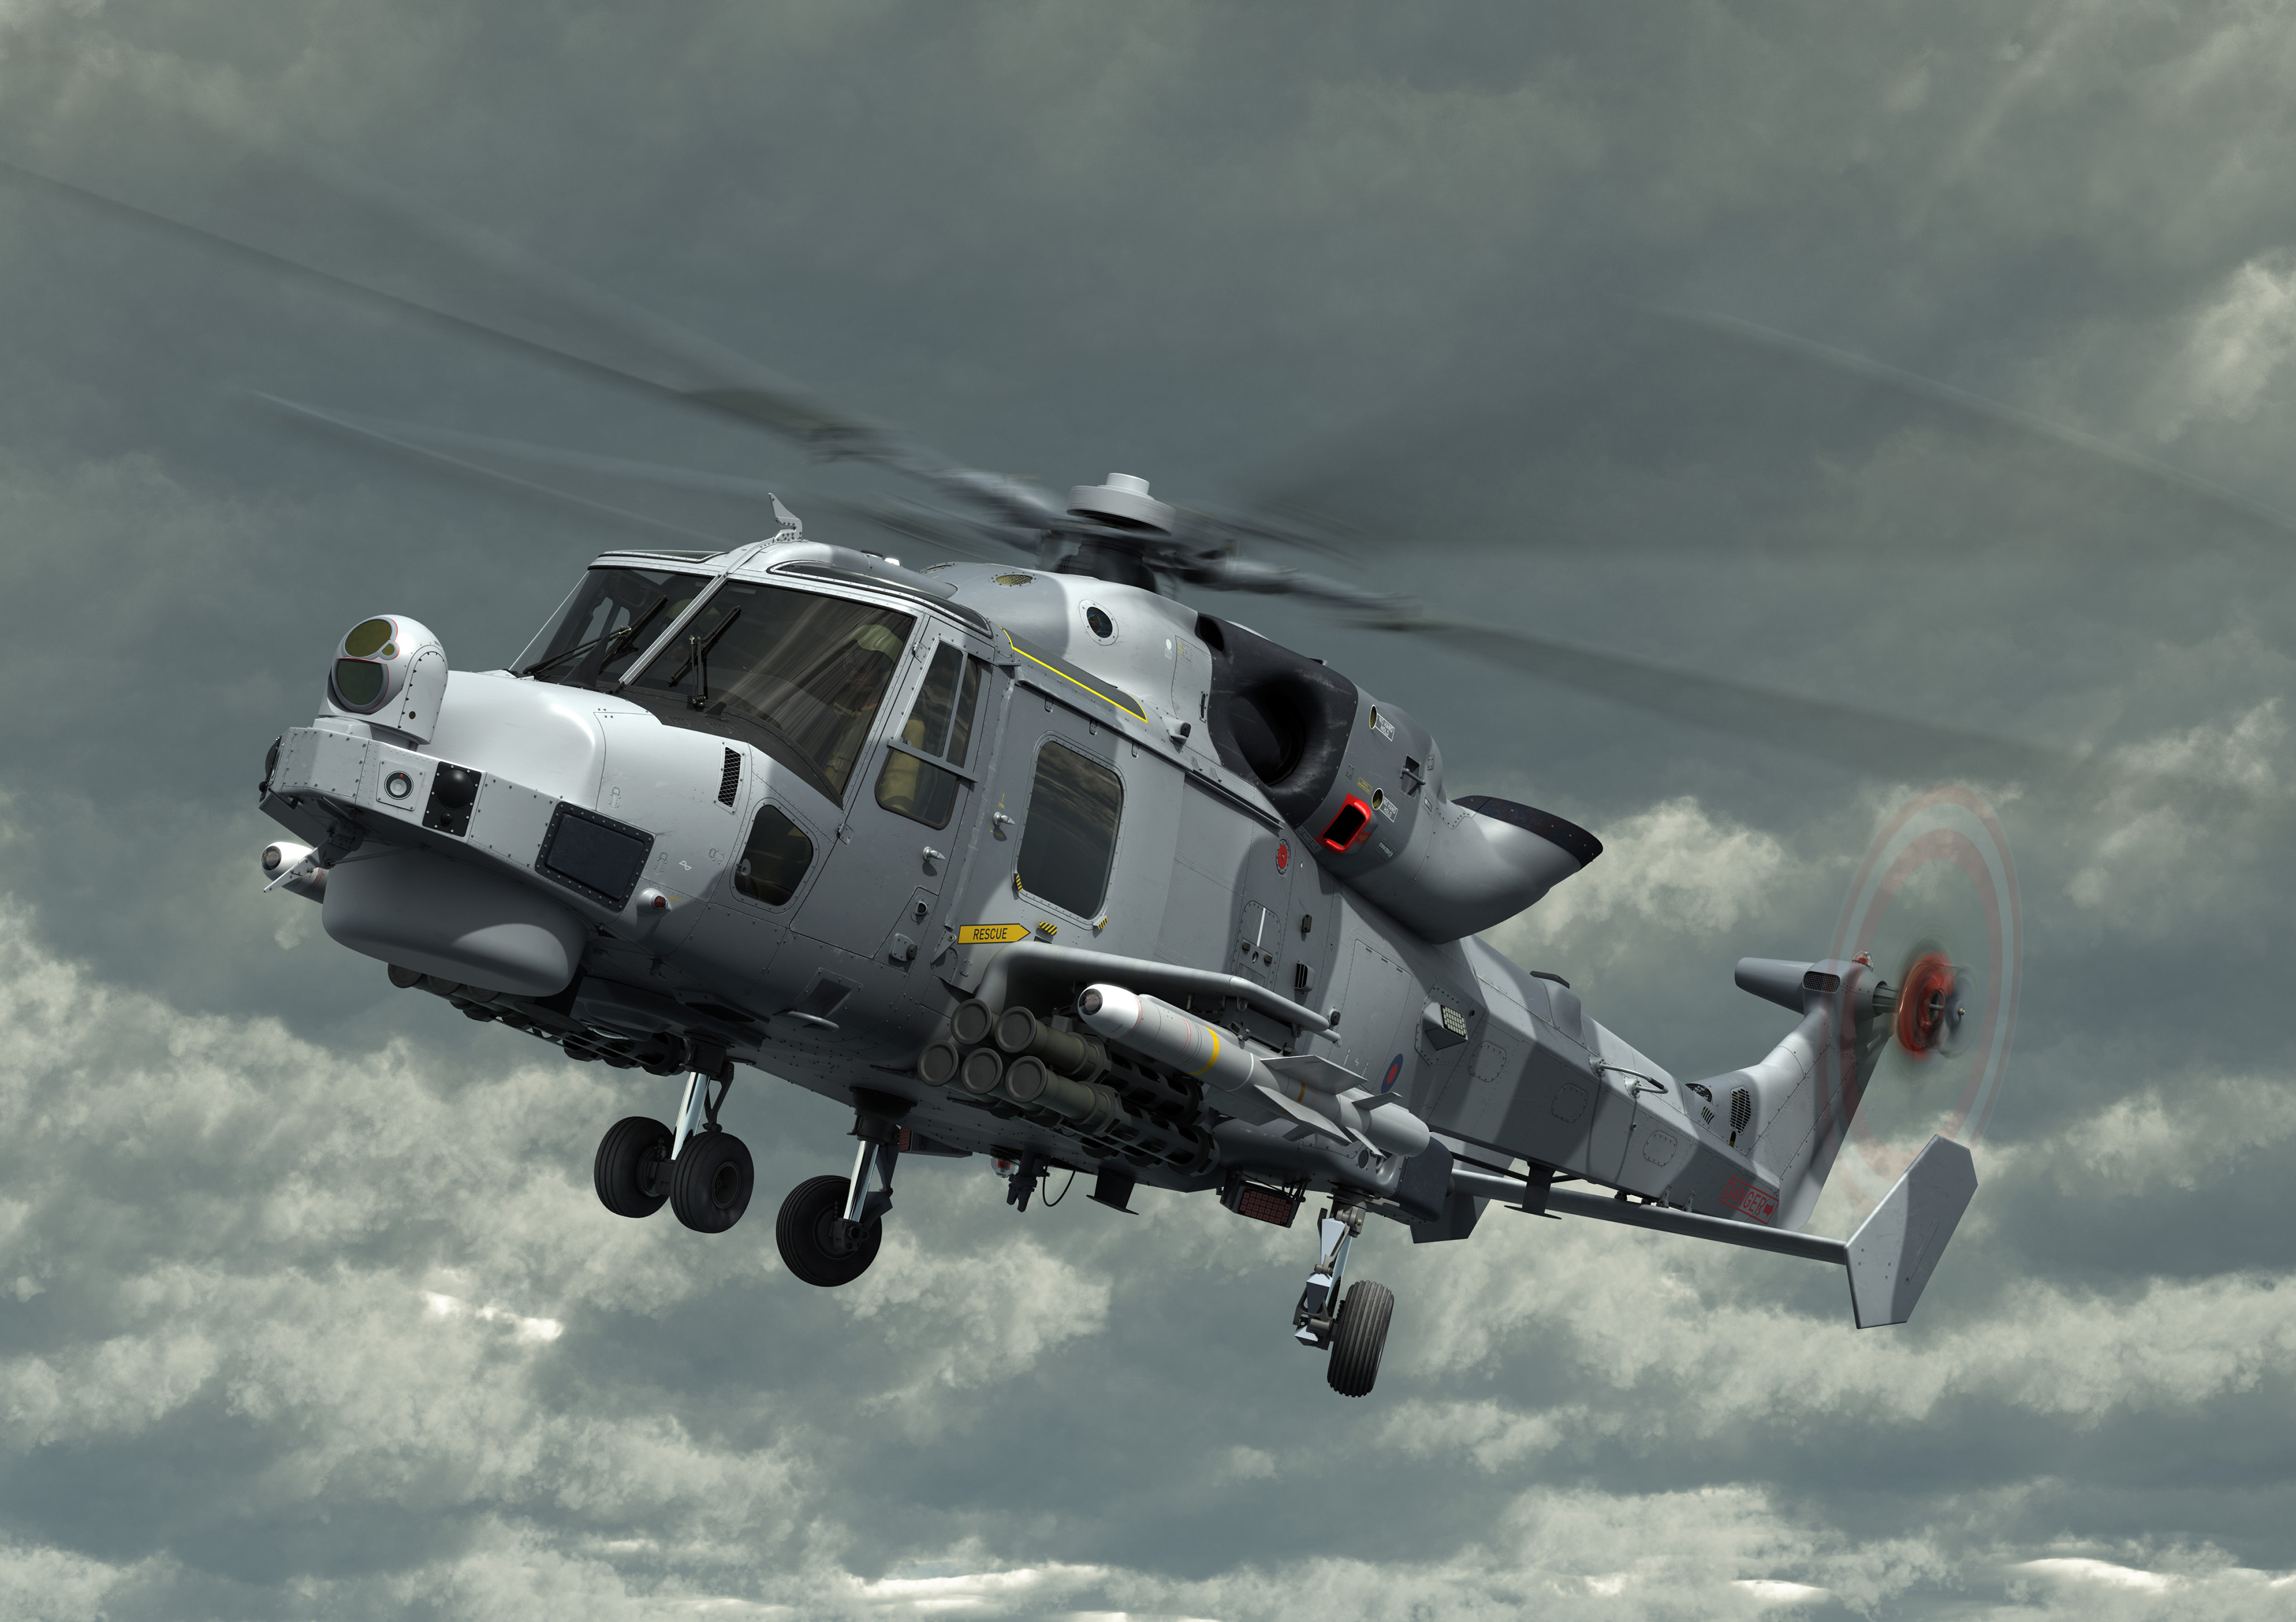 SEA VENOM/ANL in flight with AW159